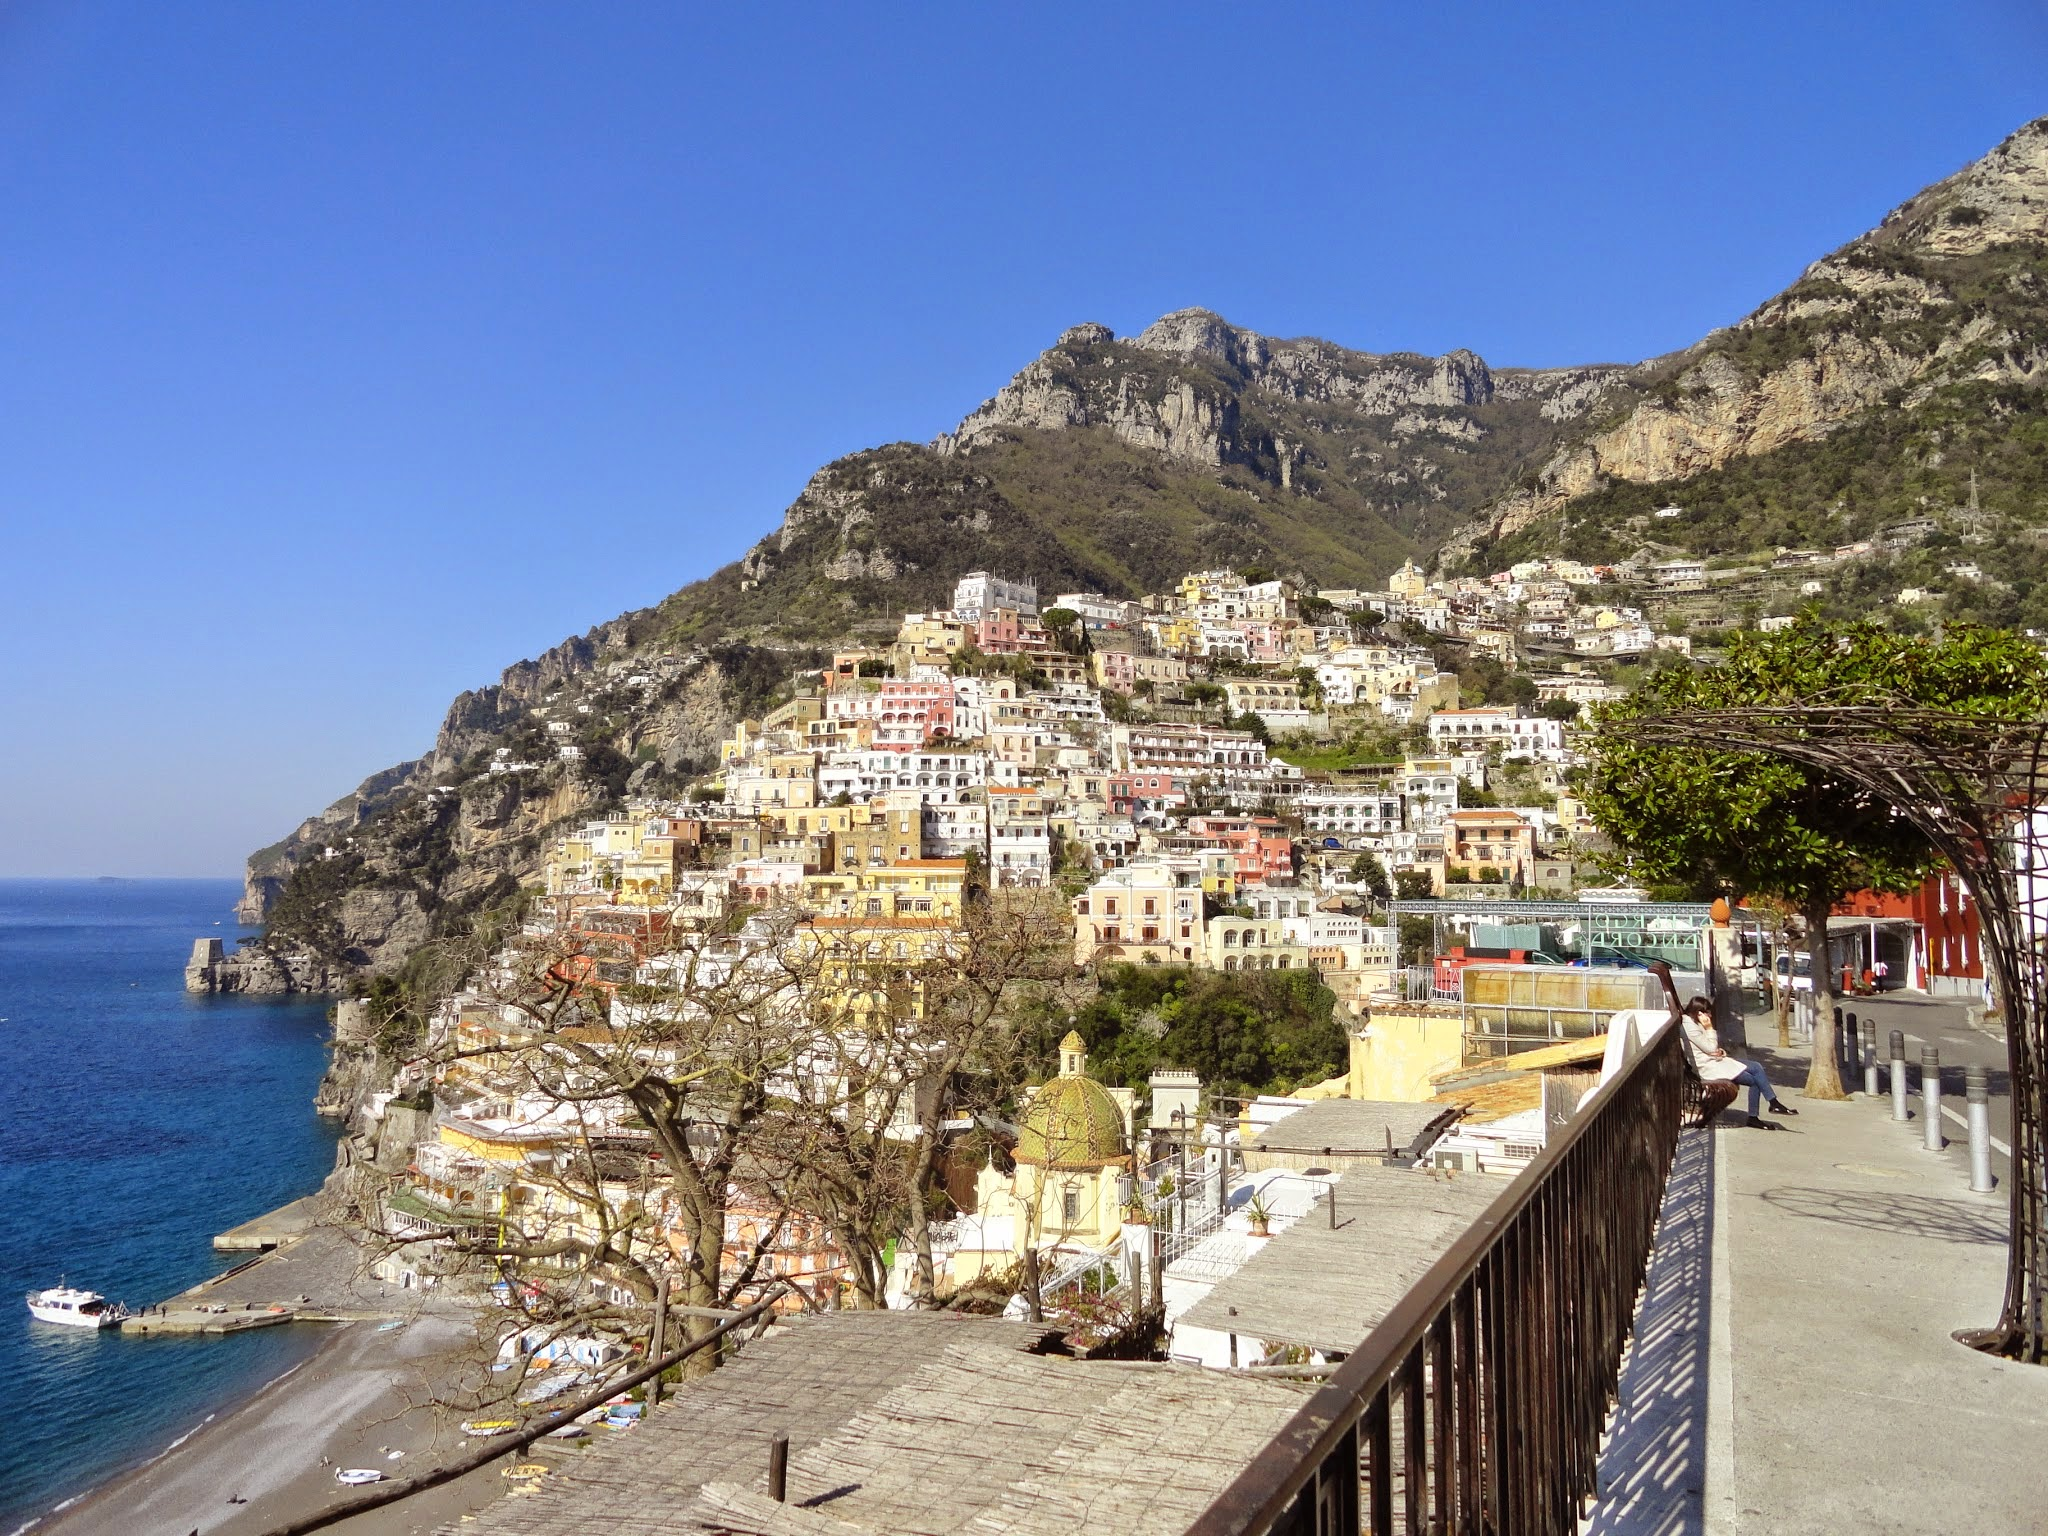 Visit Positano while staying in Sorrento, Italy. ouritalianjourney.com